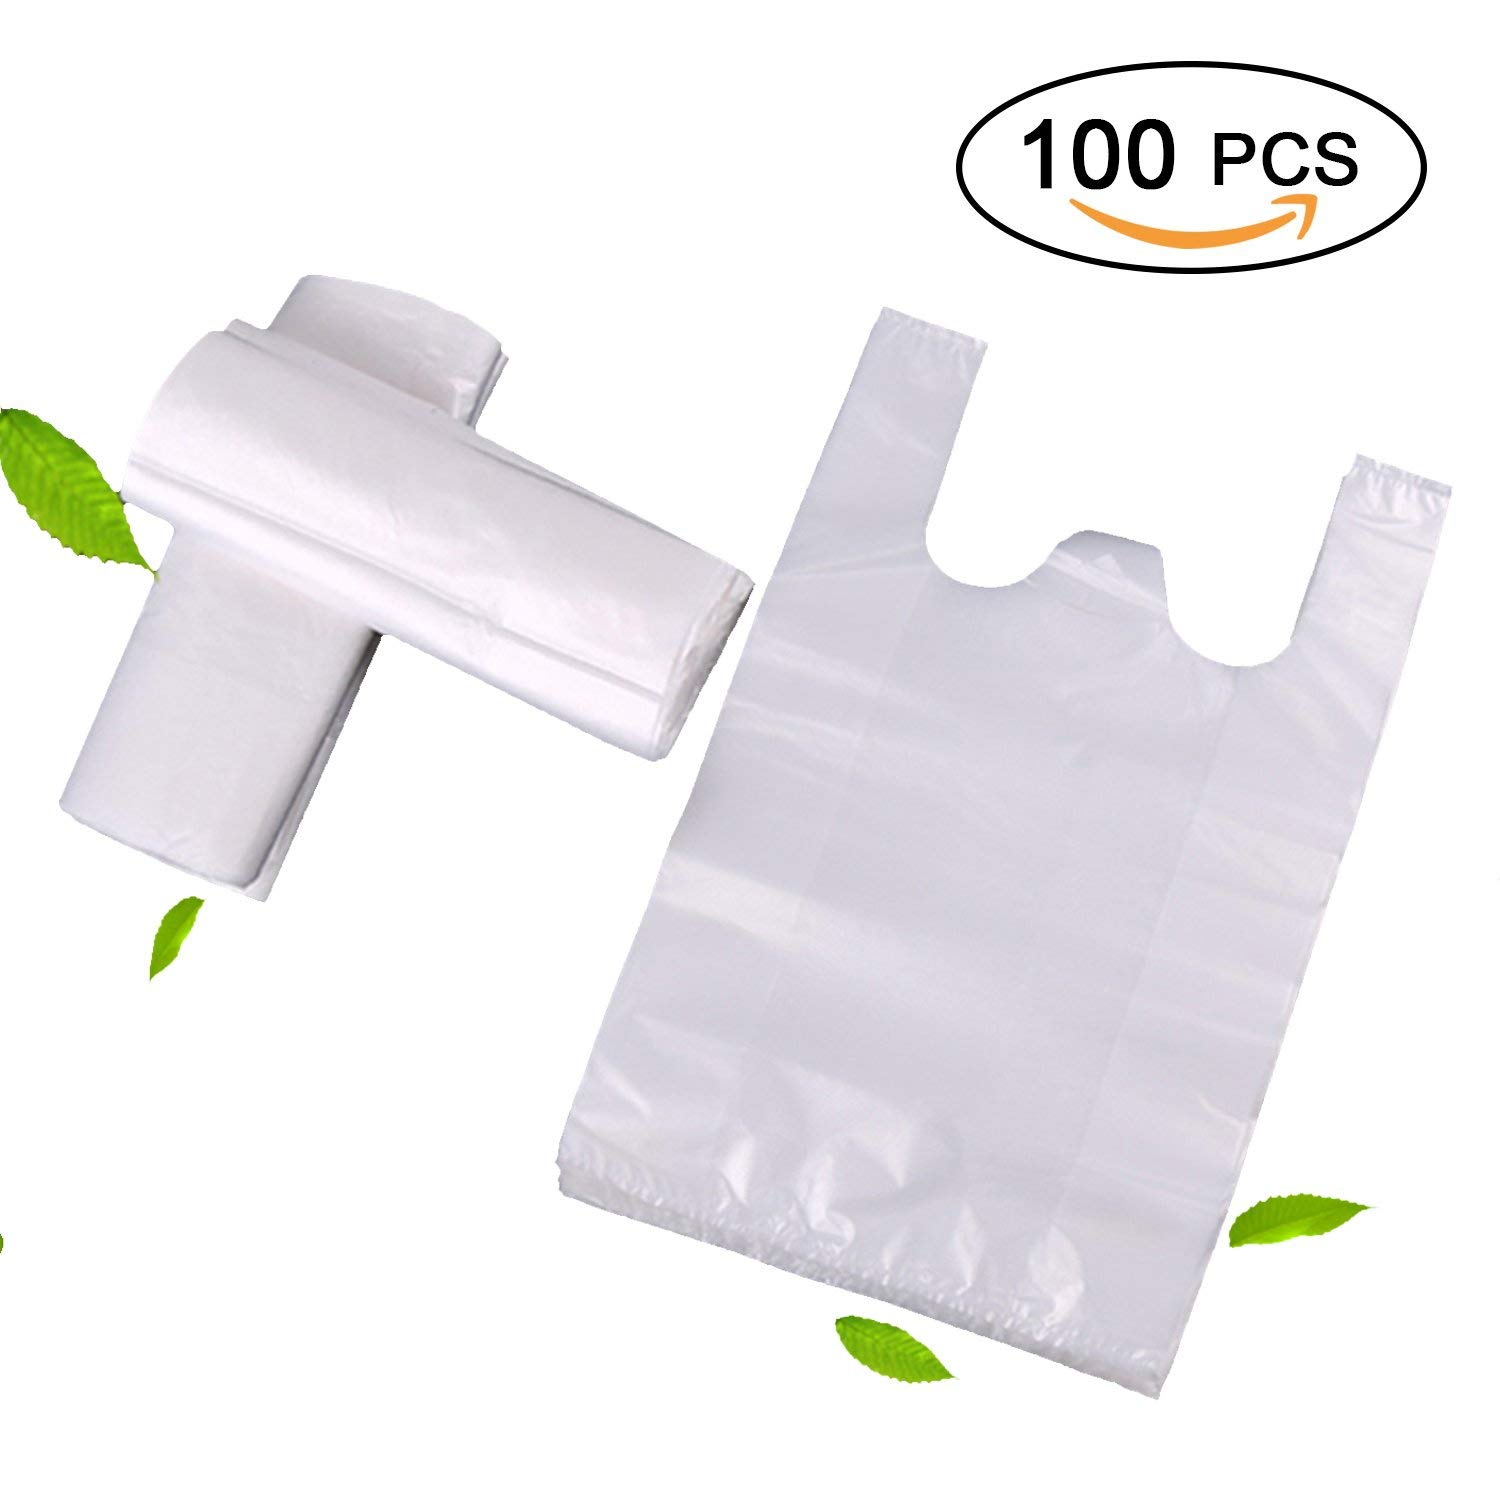 """Plastic Shopping Bags/Garbage bags, Topgalaxy.Z Reusable Grocery Bags, Retail plastic bag - Measures 14.17"""" X 9.46"""" X 25.6"""", 1.5 Mil - 100 Count plastic bags/T Shirt Bags/Trash bags"""